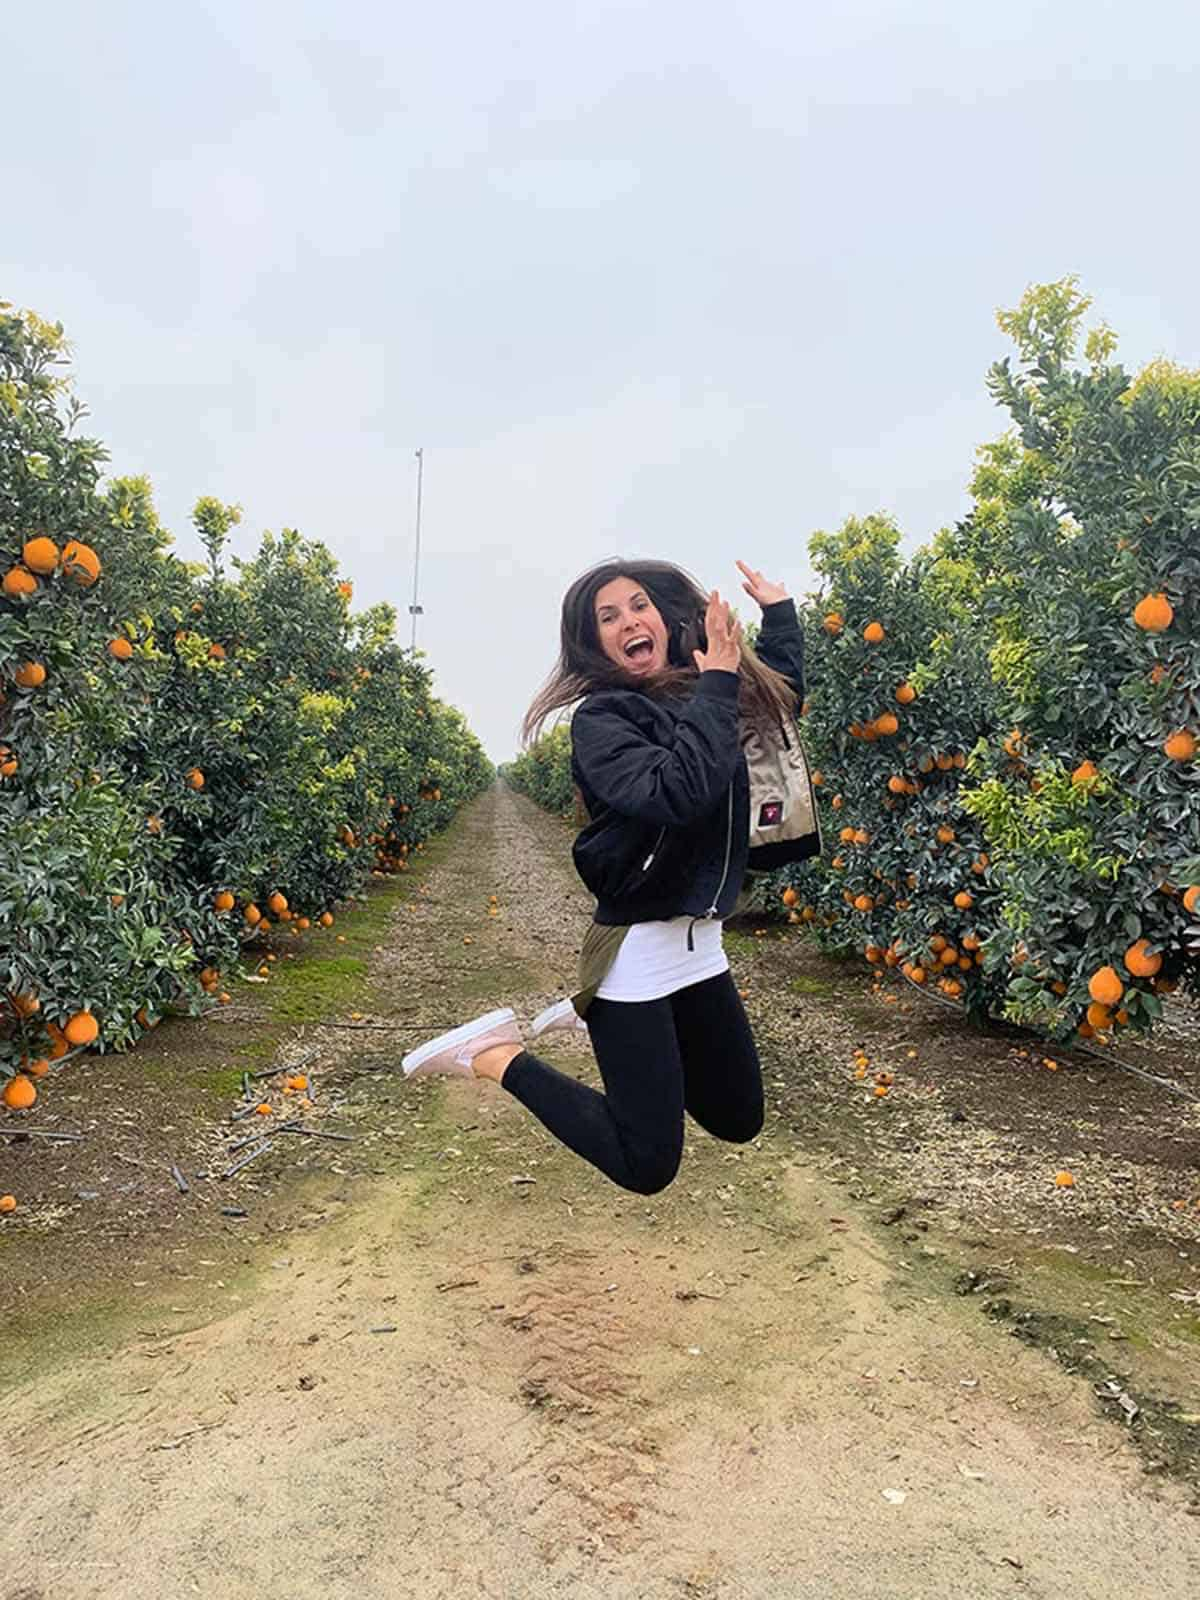 Woman jumping in the air in between two lines of citrus trees